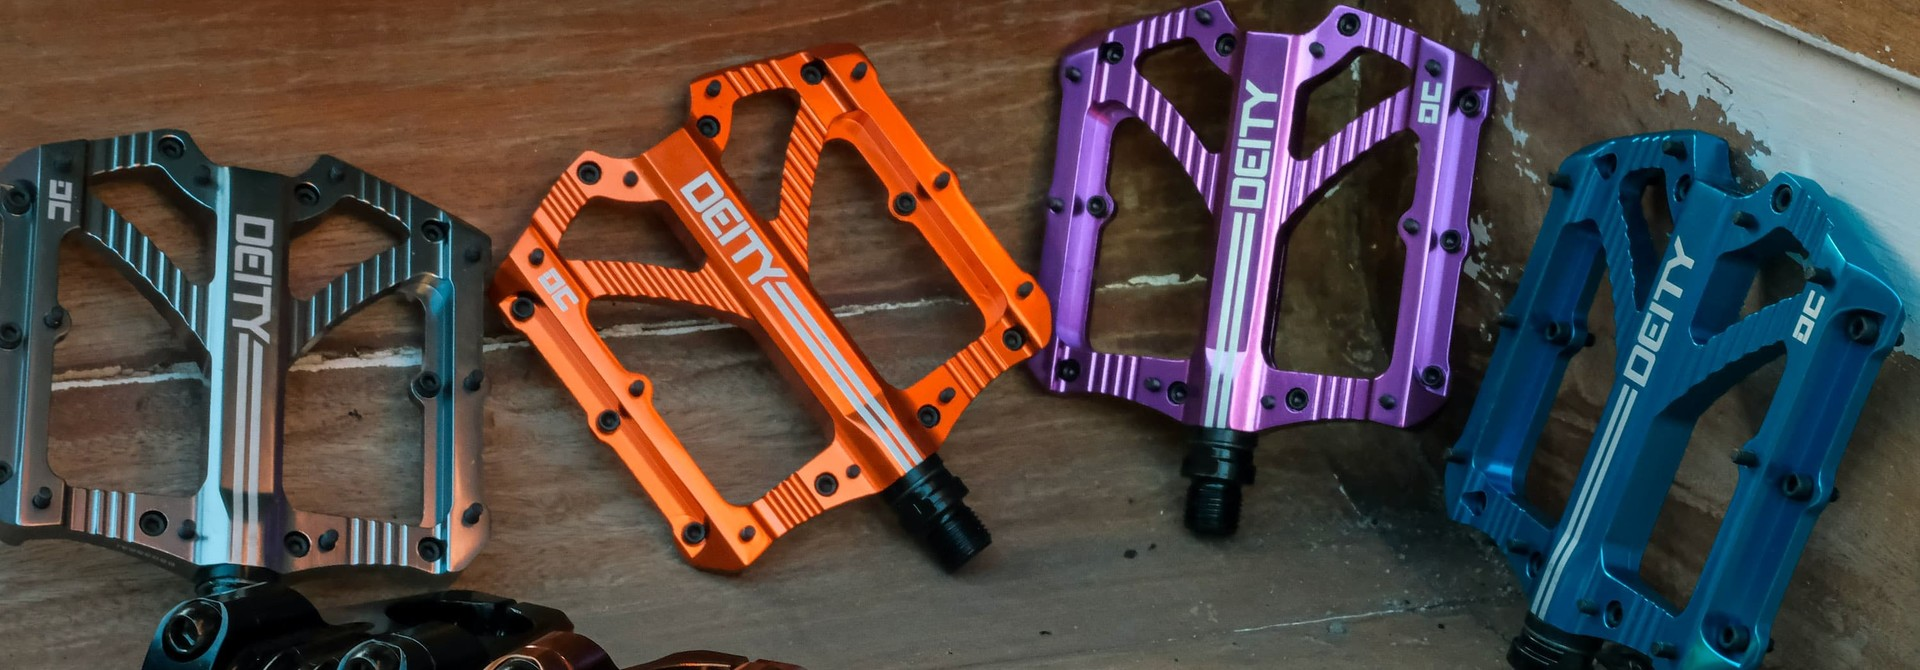 MOUNTAINBIKE PEDALS